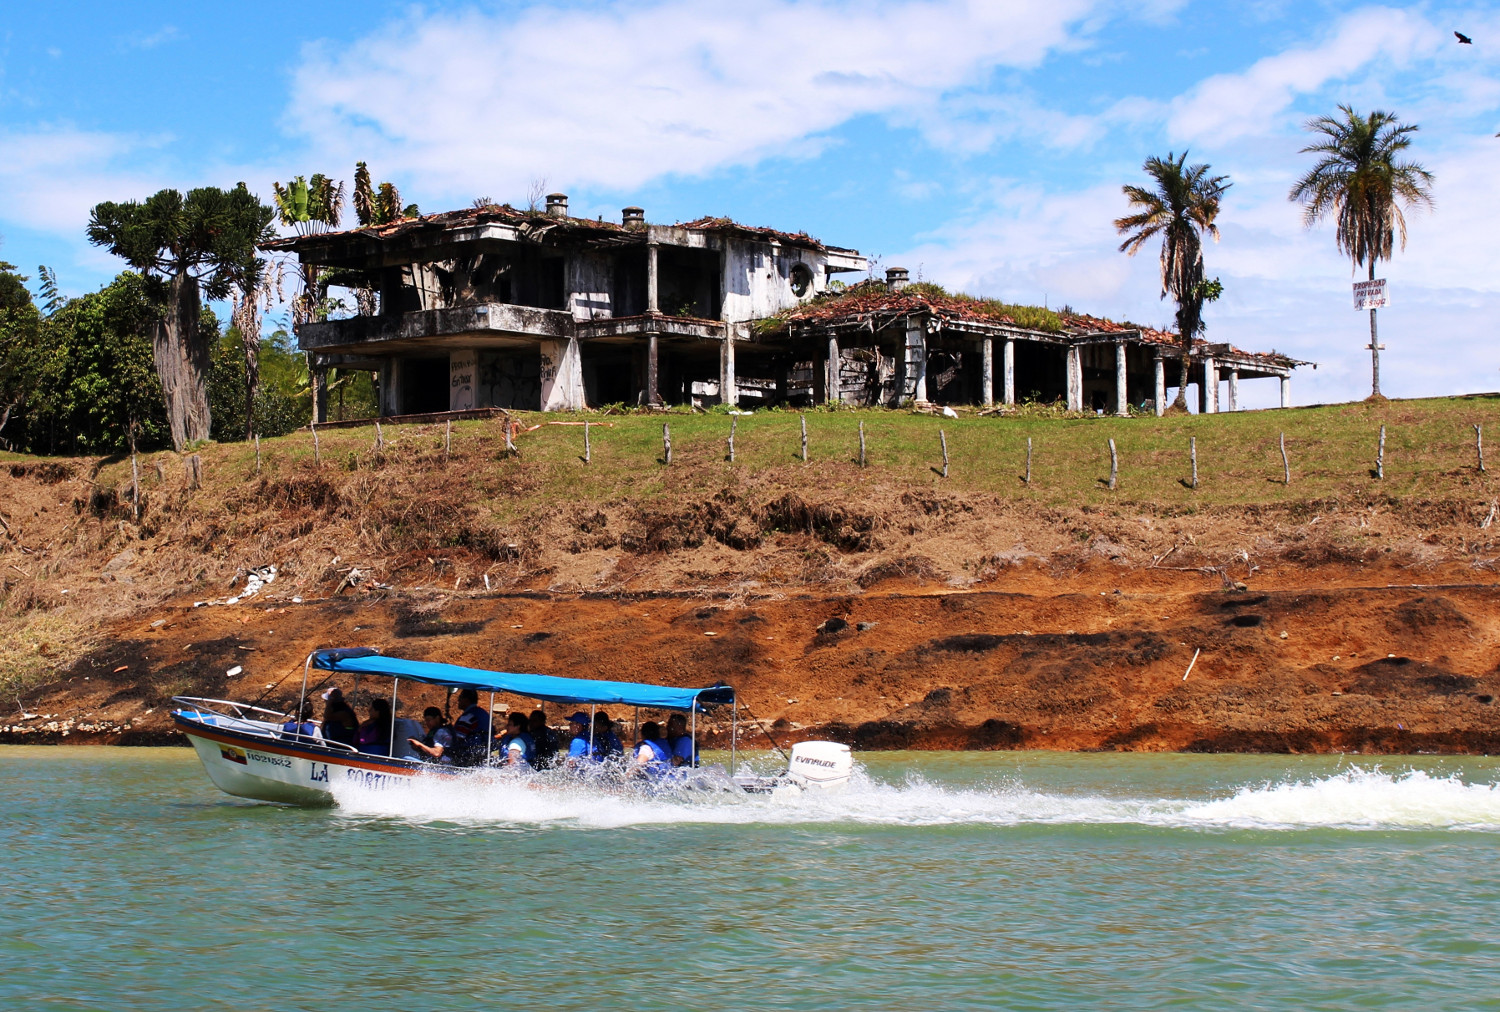 Bootsausflug zum abgefackelten Luxuswohnhaus des Drogenkönigs Pablo Escobar | Boat trip to the burnt-out luxury villa of the drug lord Pablo Escobar